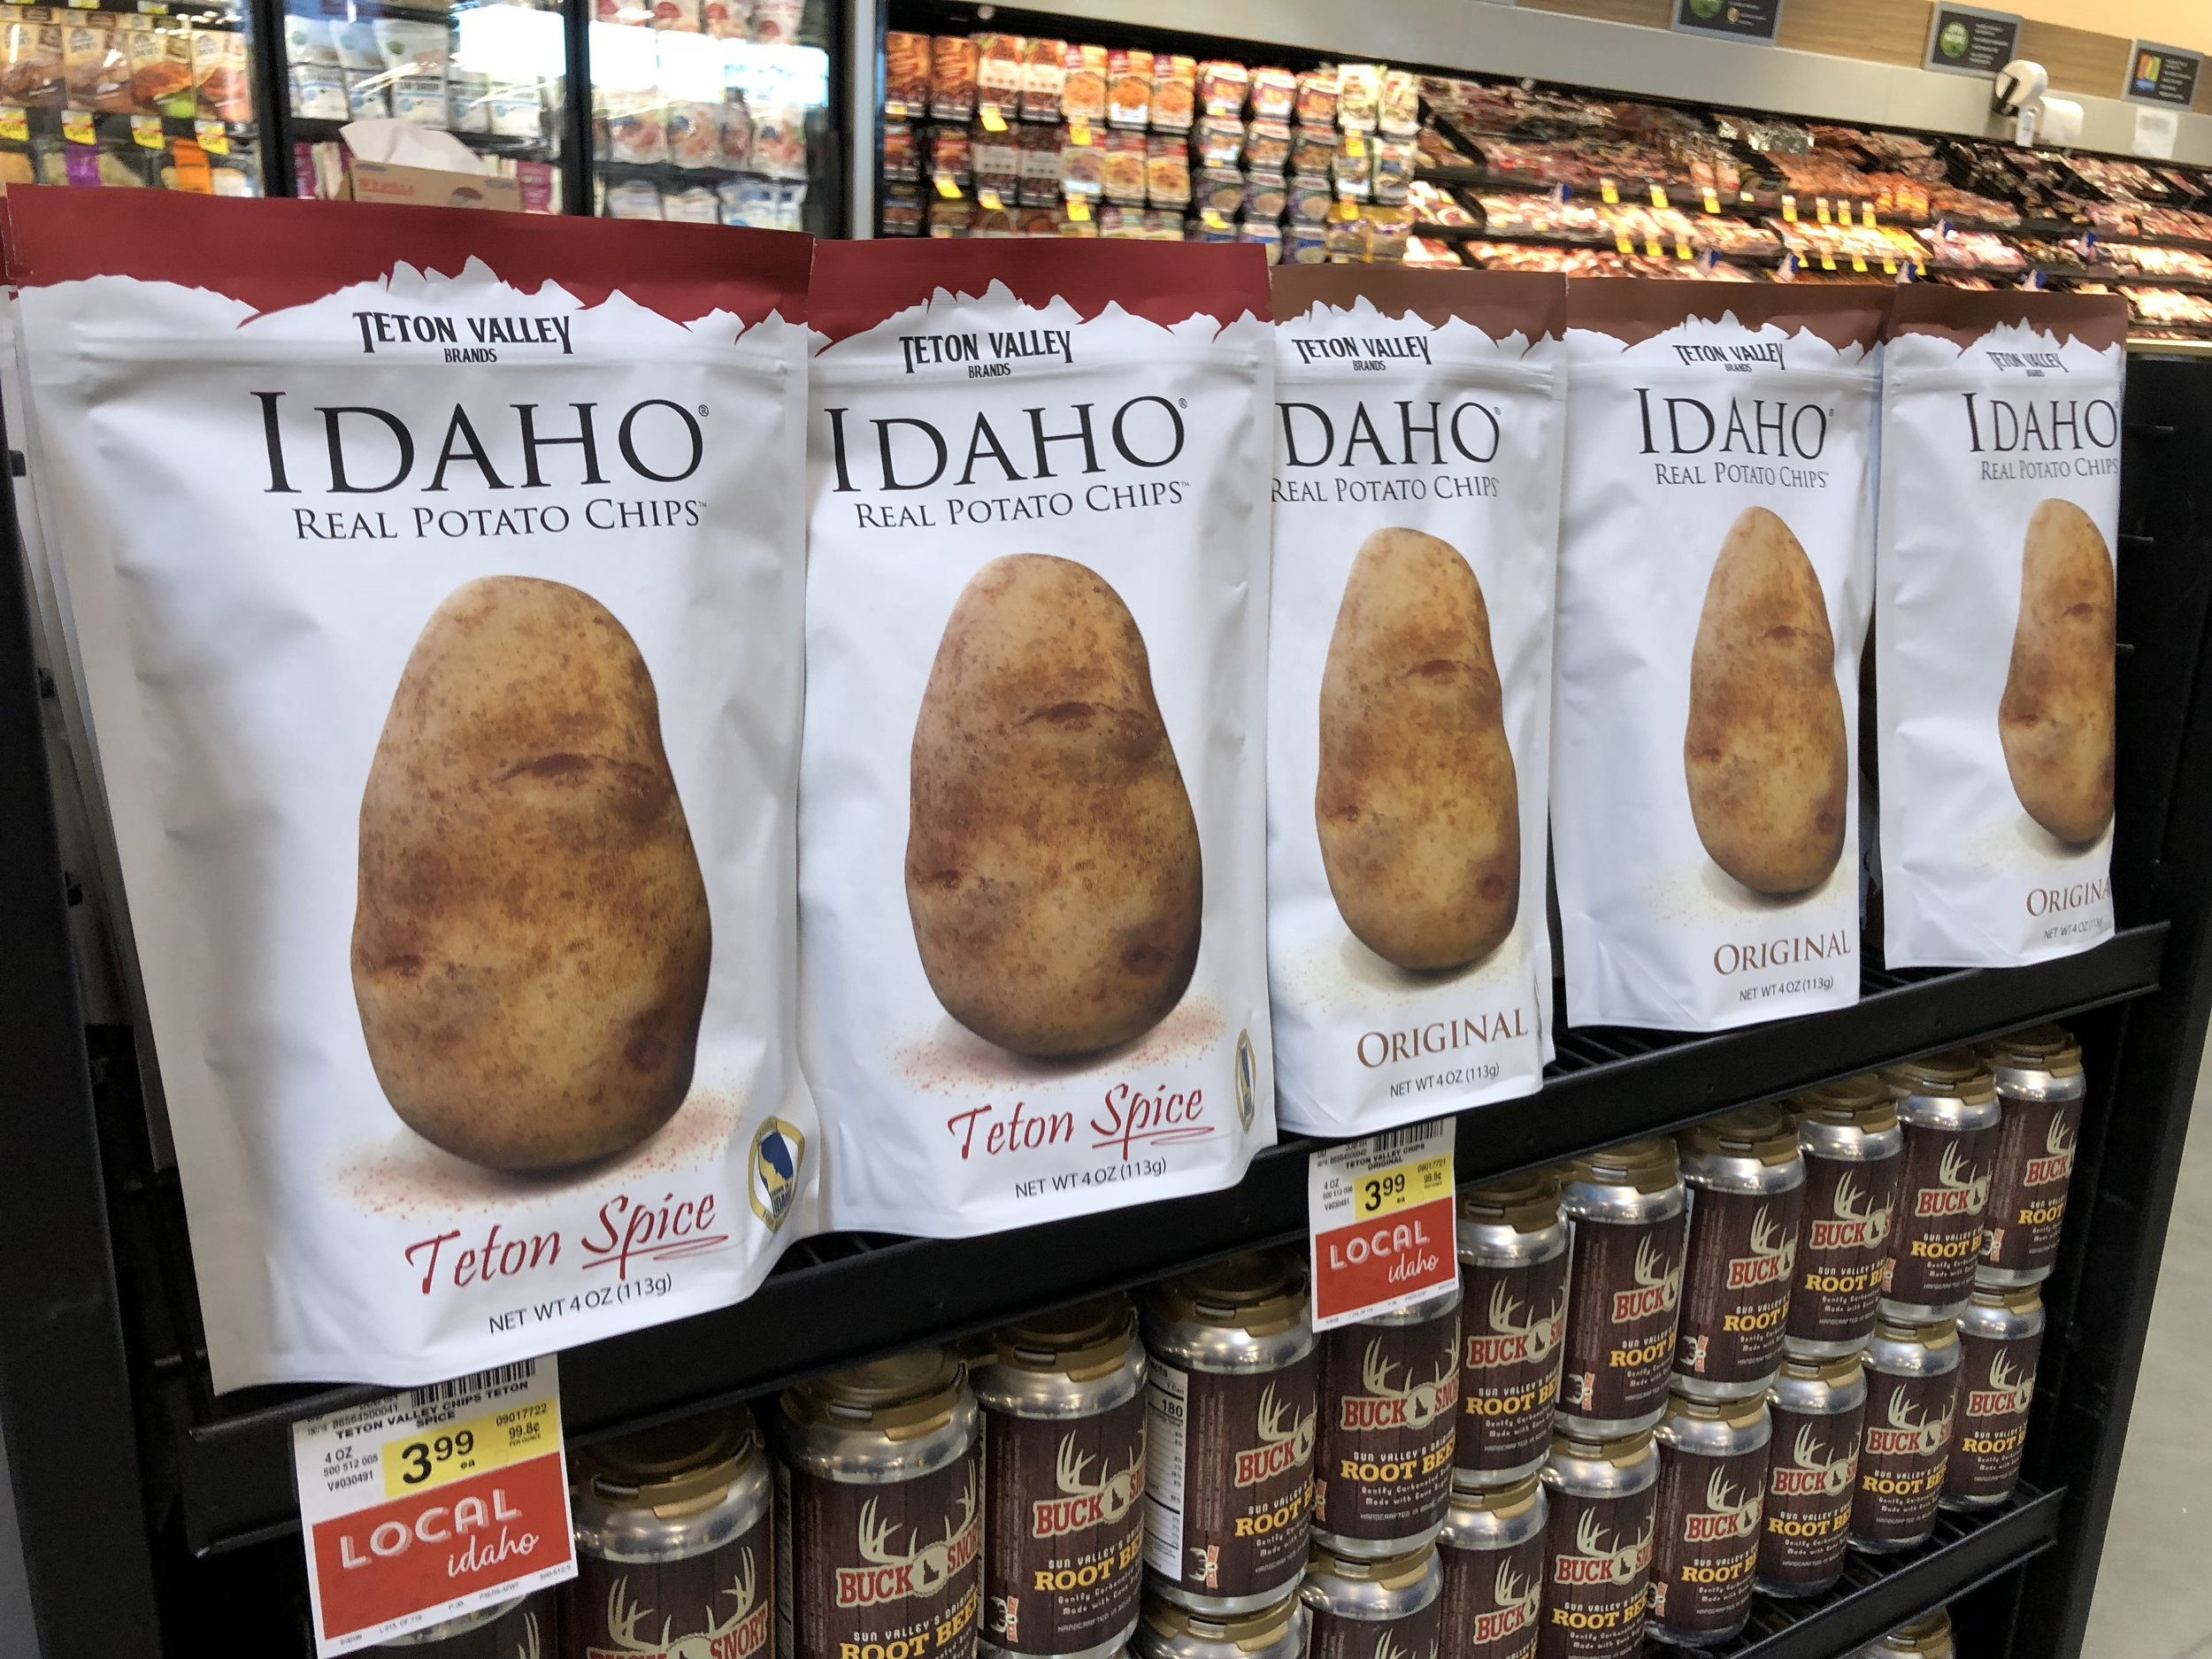 Local products include Teton Valley Beands chips and Bucksnort soda.Photo: Don Day/BoiseDev